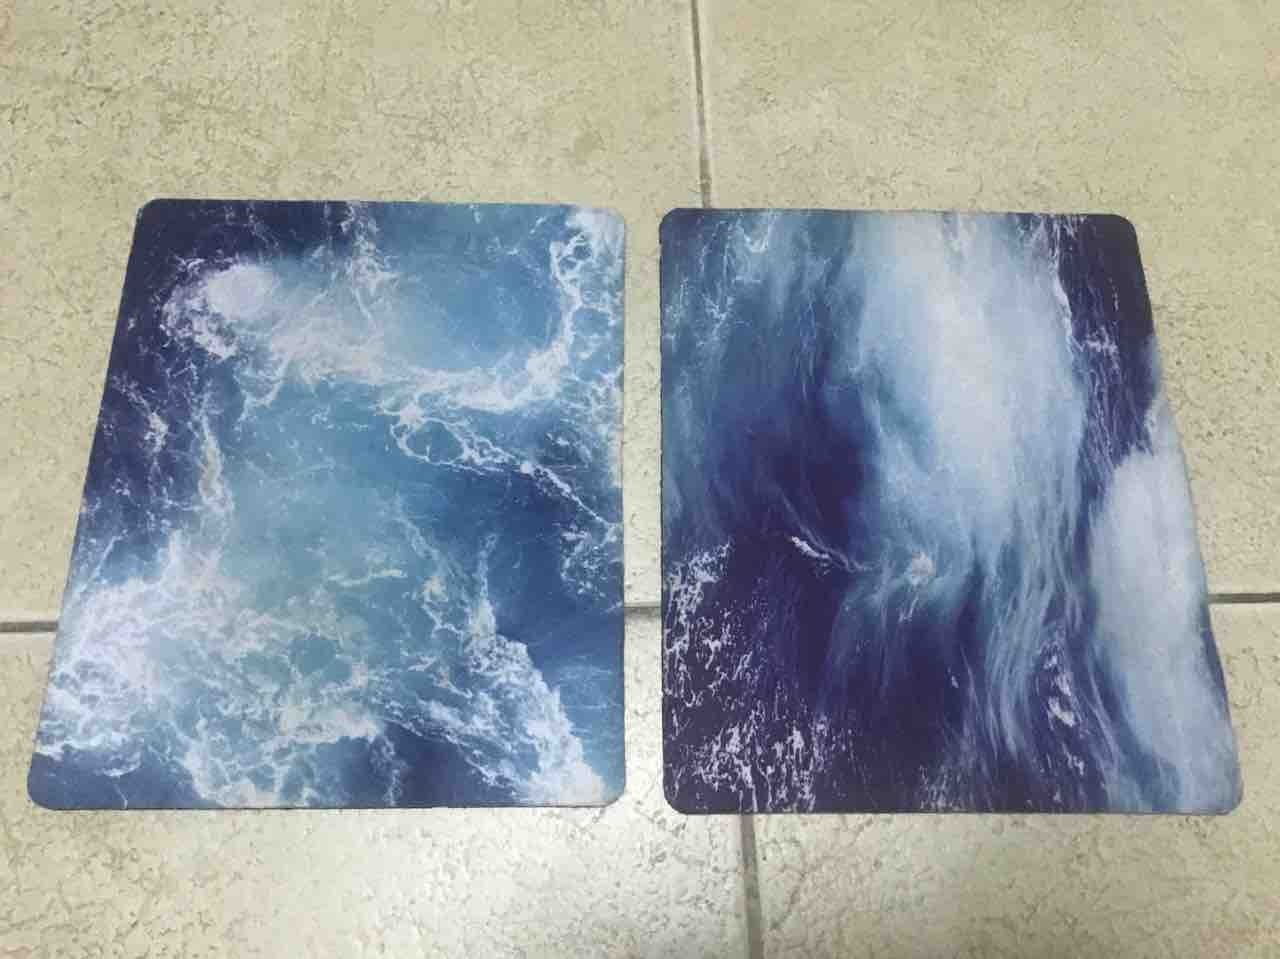 Used mouse pads